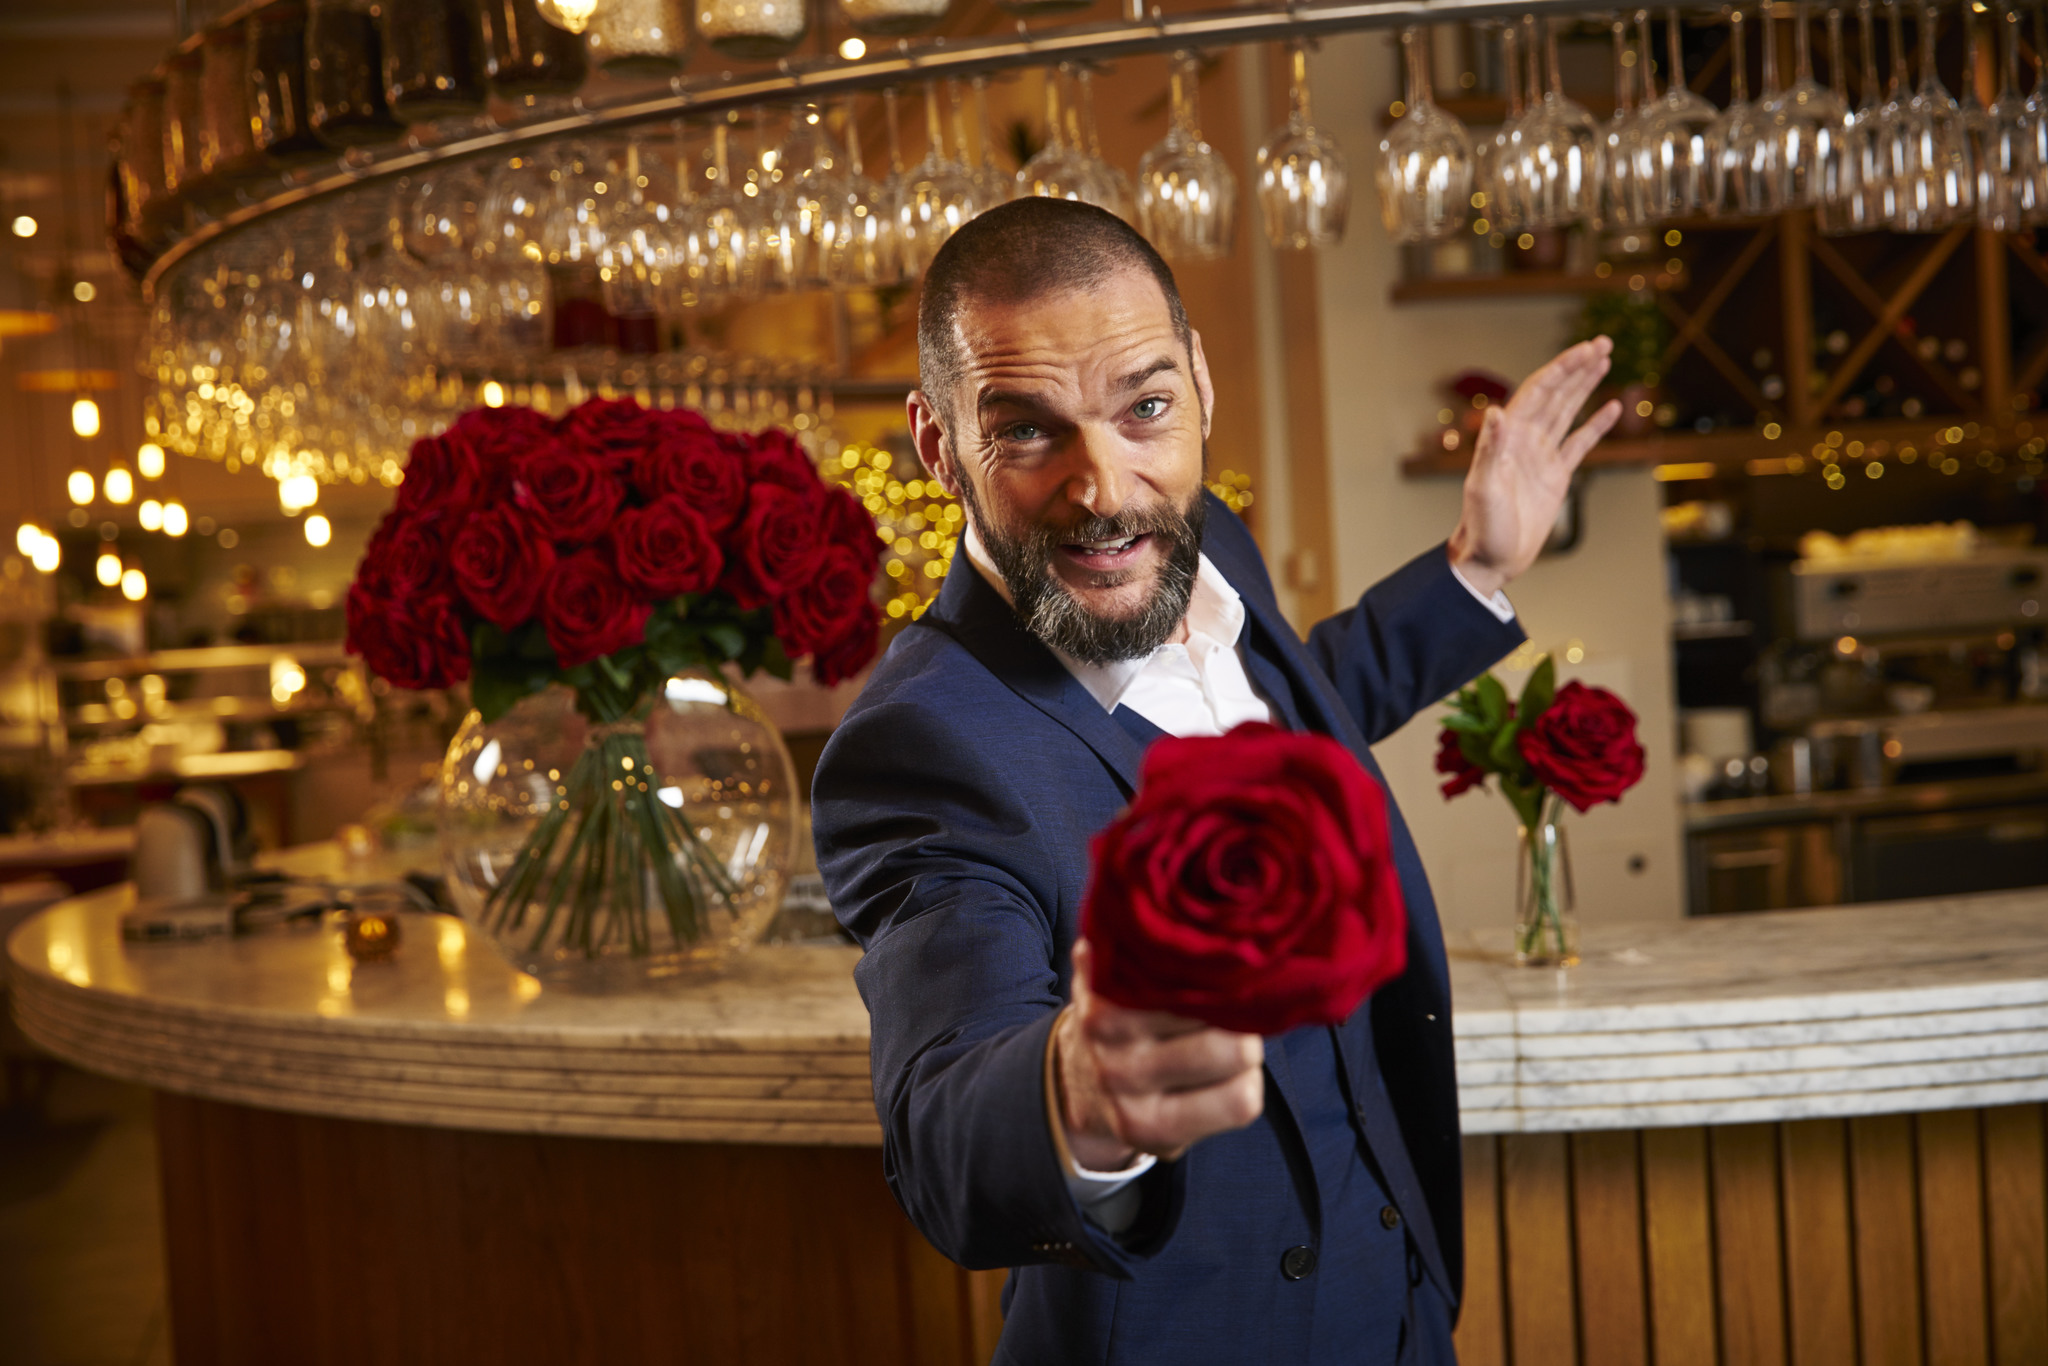 How to apply for First Dates as show bosses search for more singletons looking for love